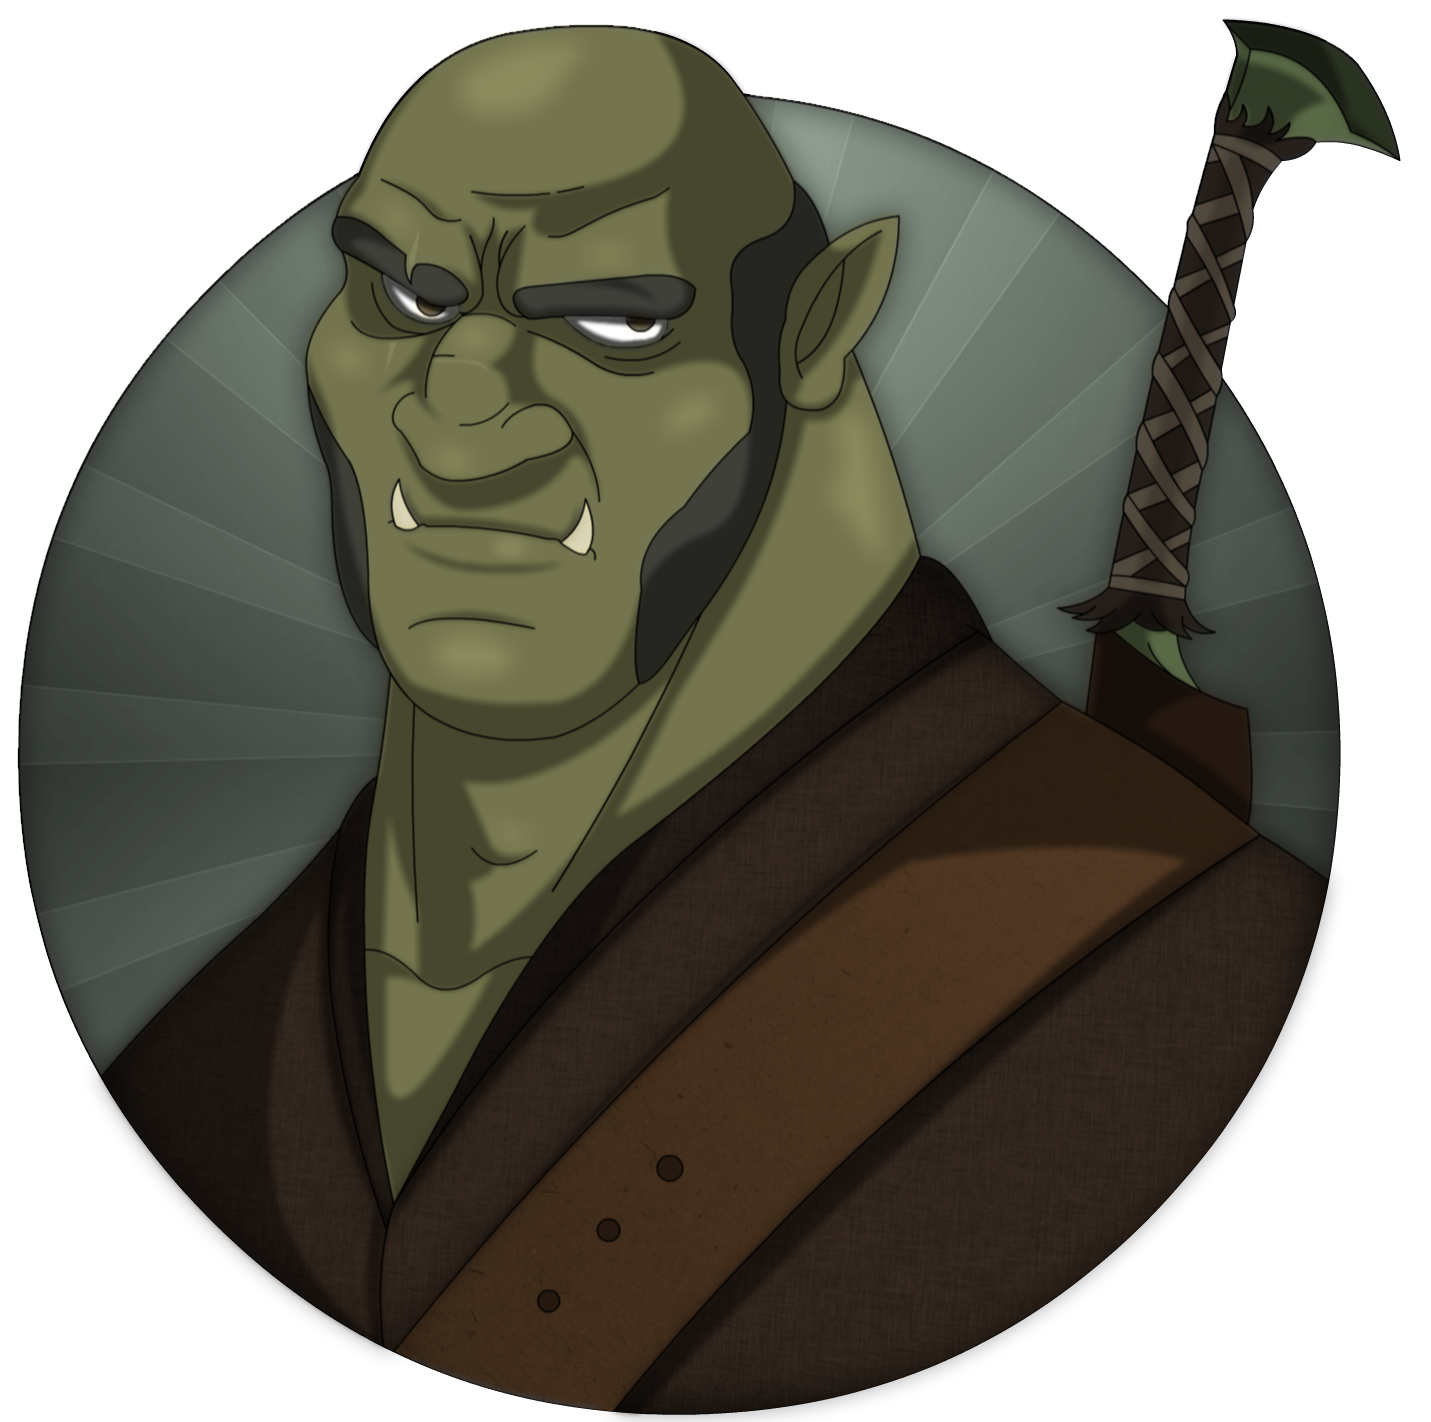 uploads orc orc PNG39 3